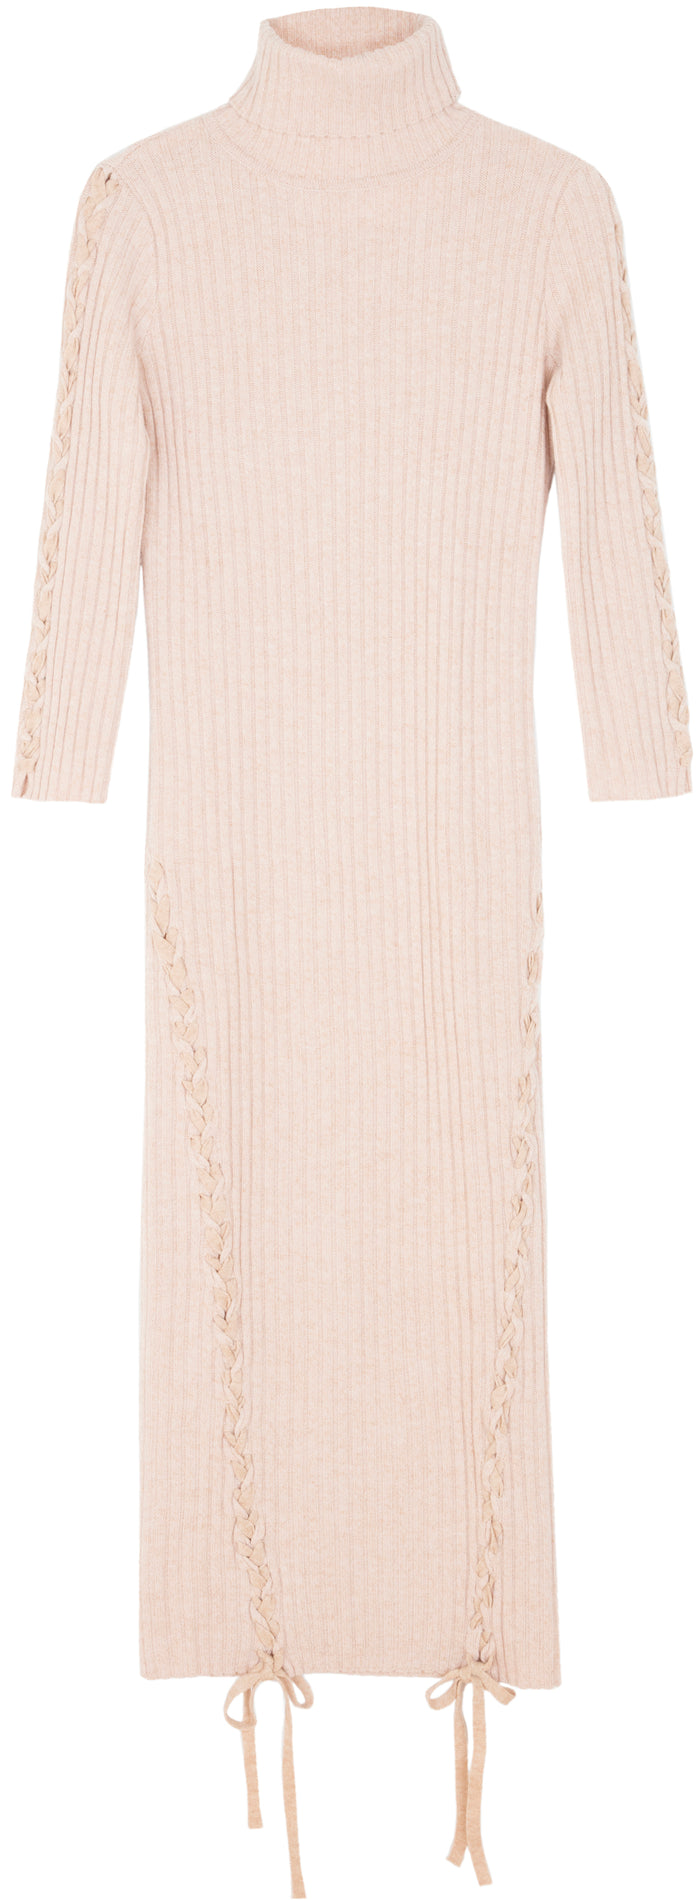 Tassili Sweater Dress